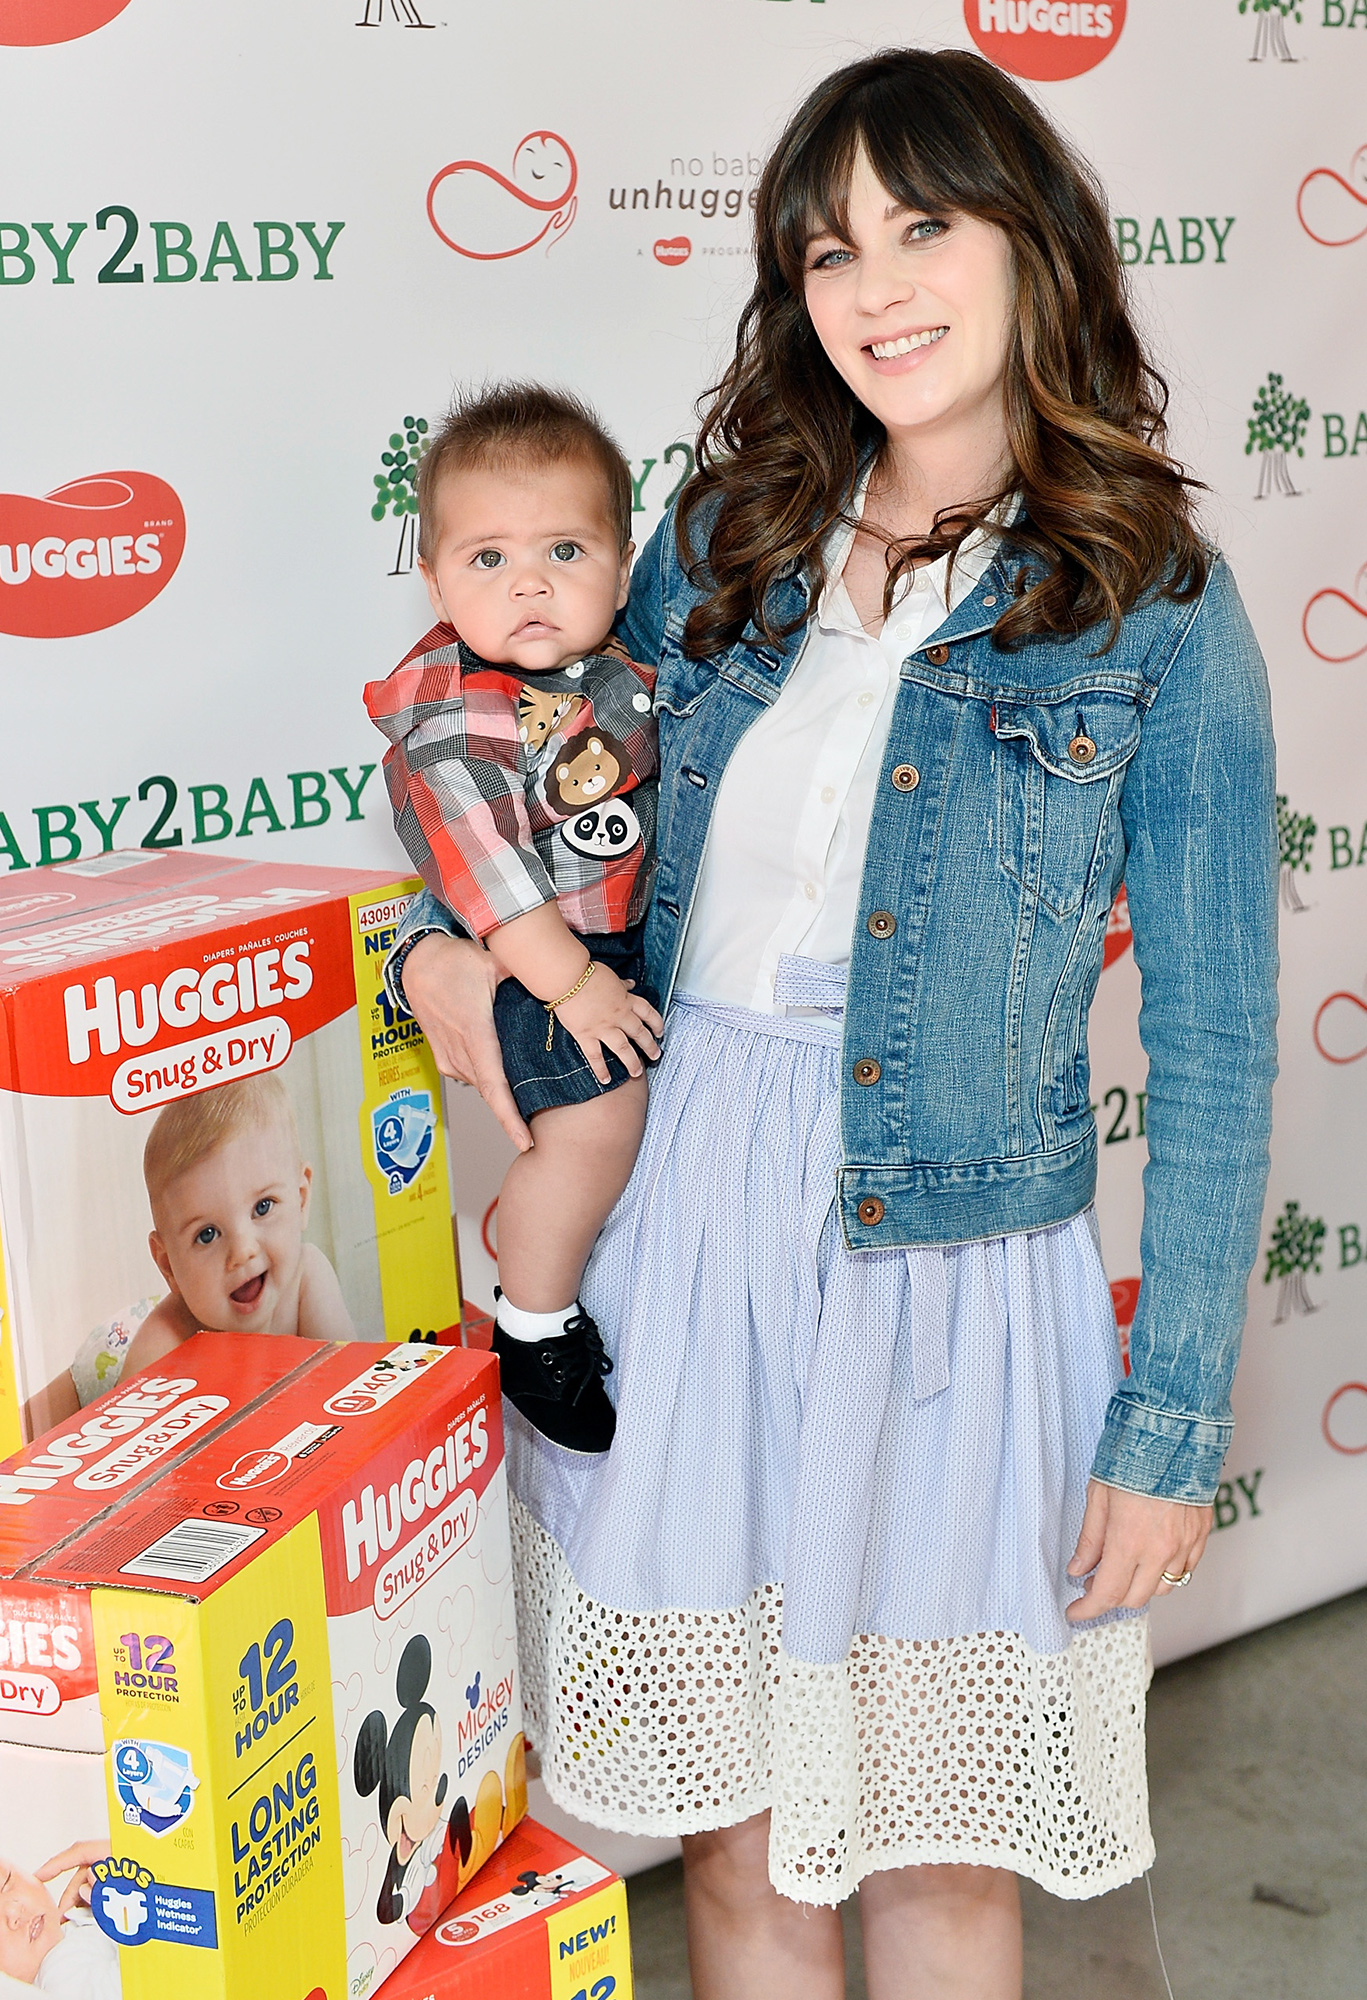 Baby2Baby Baby Carnival Presented By Huggies